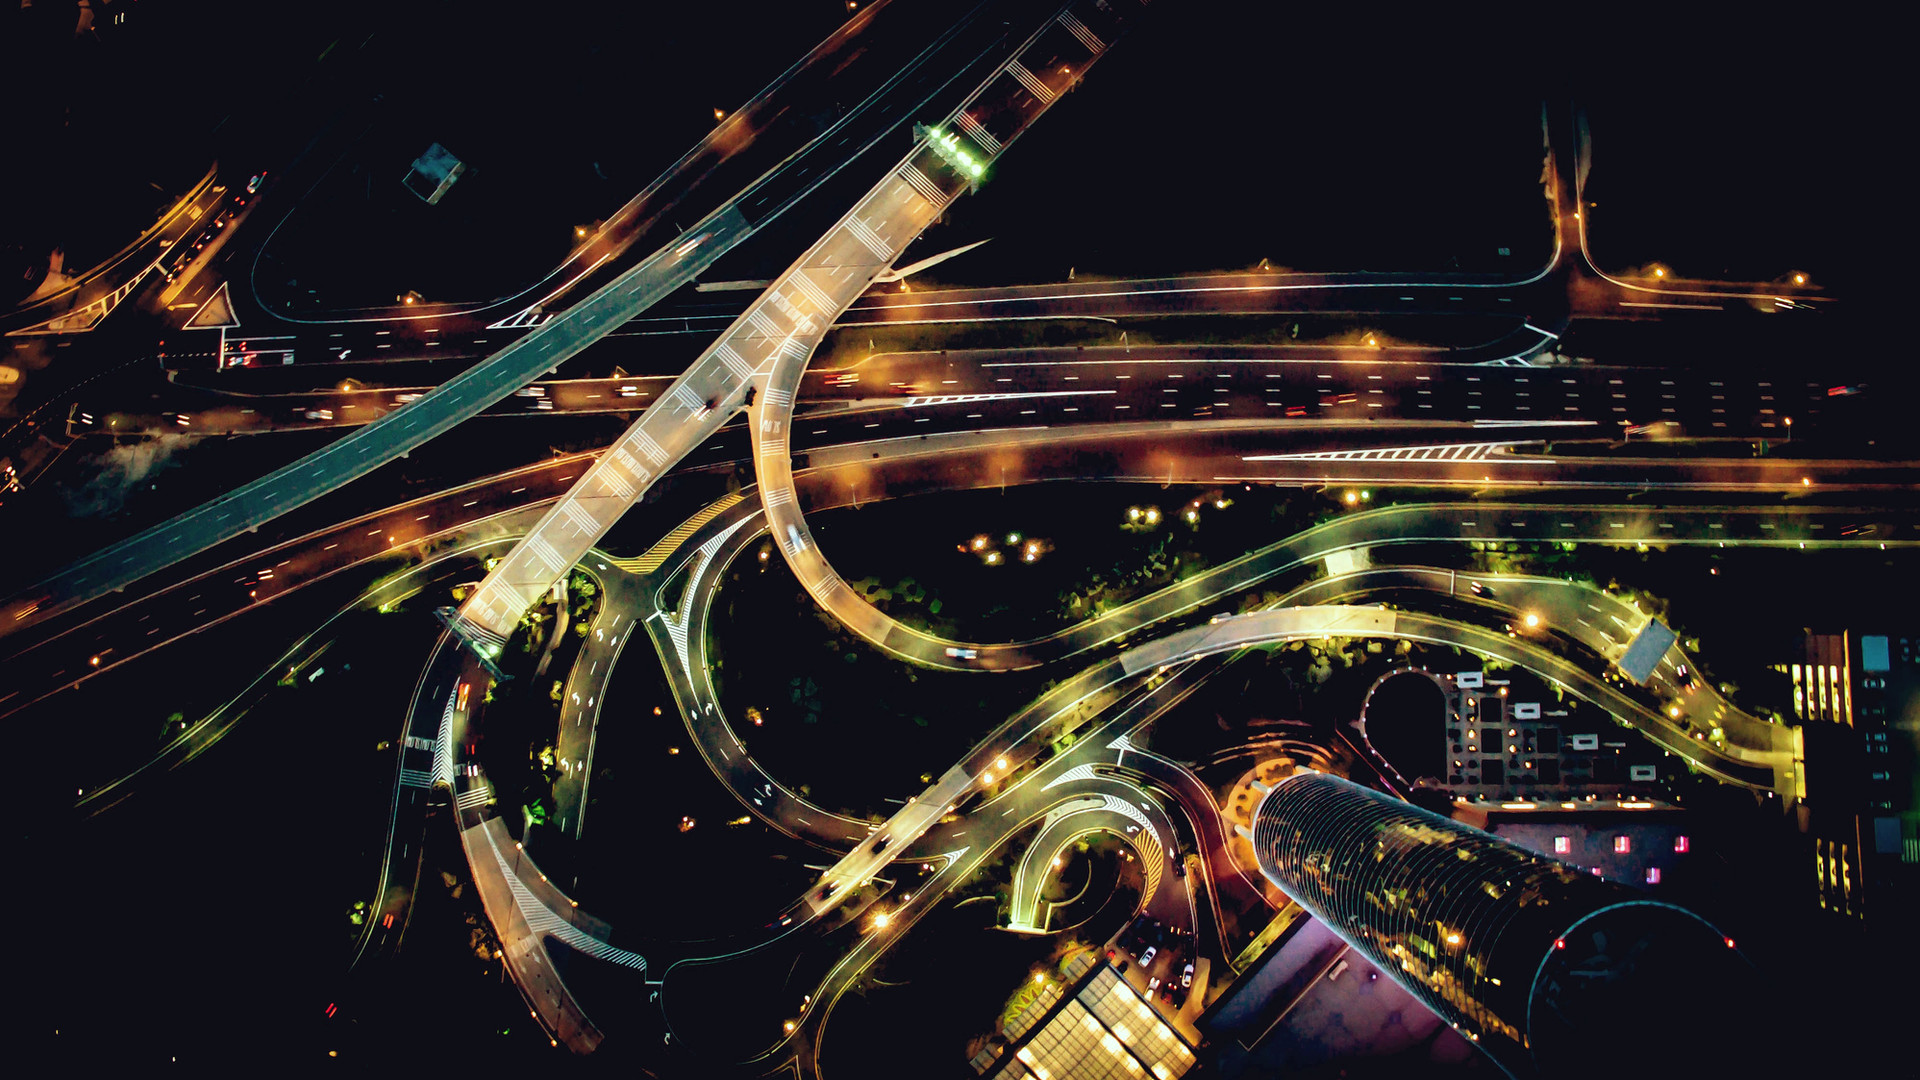 Nightimt aerial view of road junction